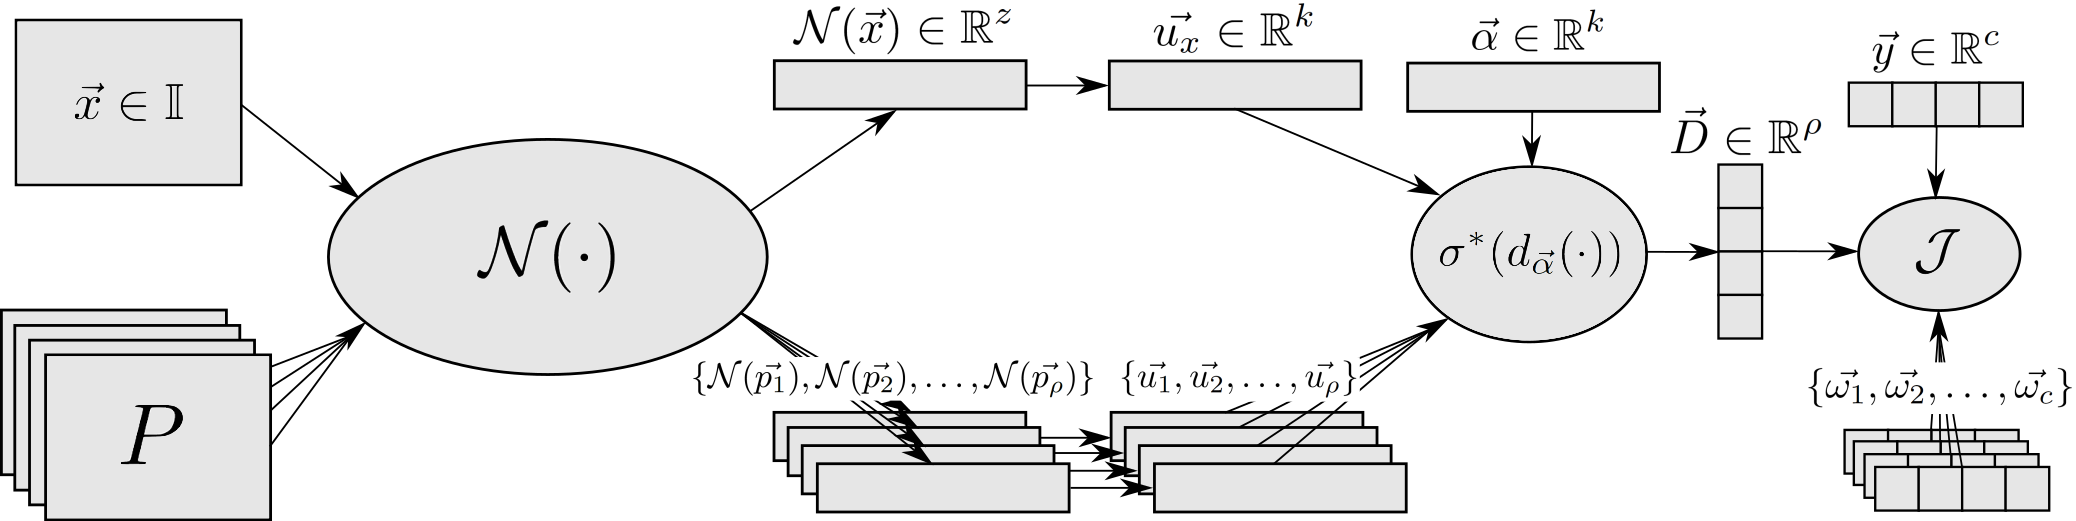 """The diagram shows the IUPG learning framework components built around an abstracted network, N. More details are available in the authors' original paper, """"Innocent Until Proven Guilty (IUPG): Building Deep Learning Models with Embedded Robustness to Out-Of-Distribution Content."""""""